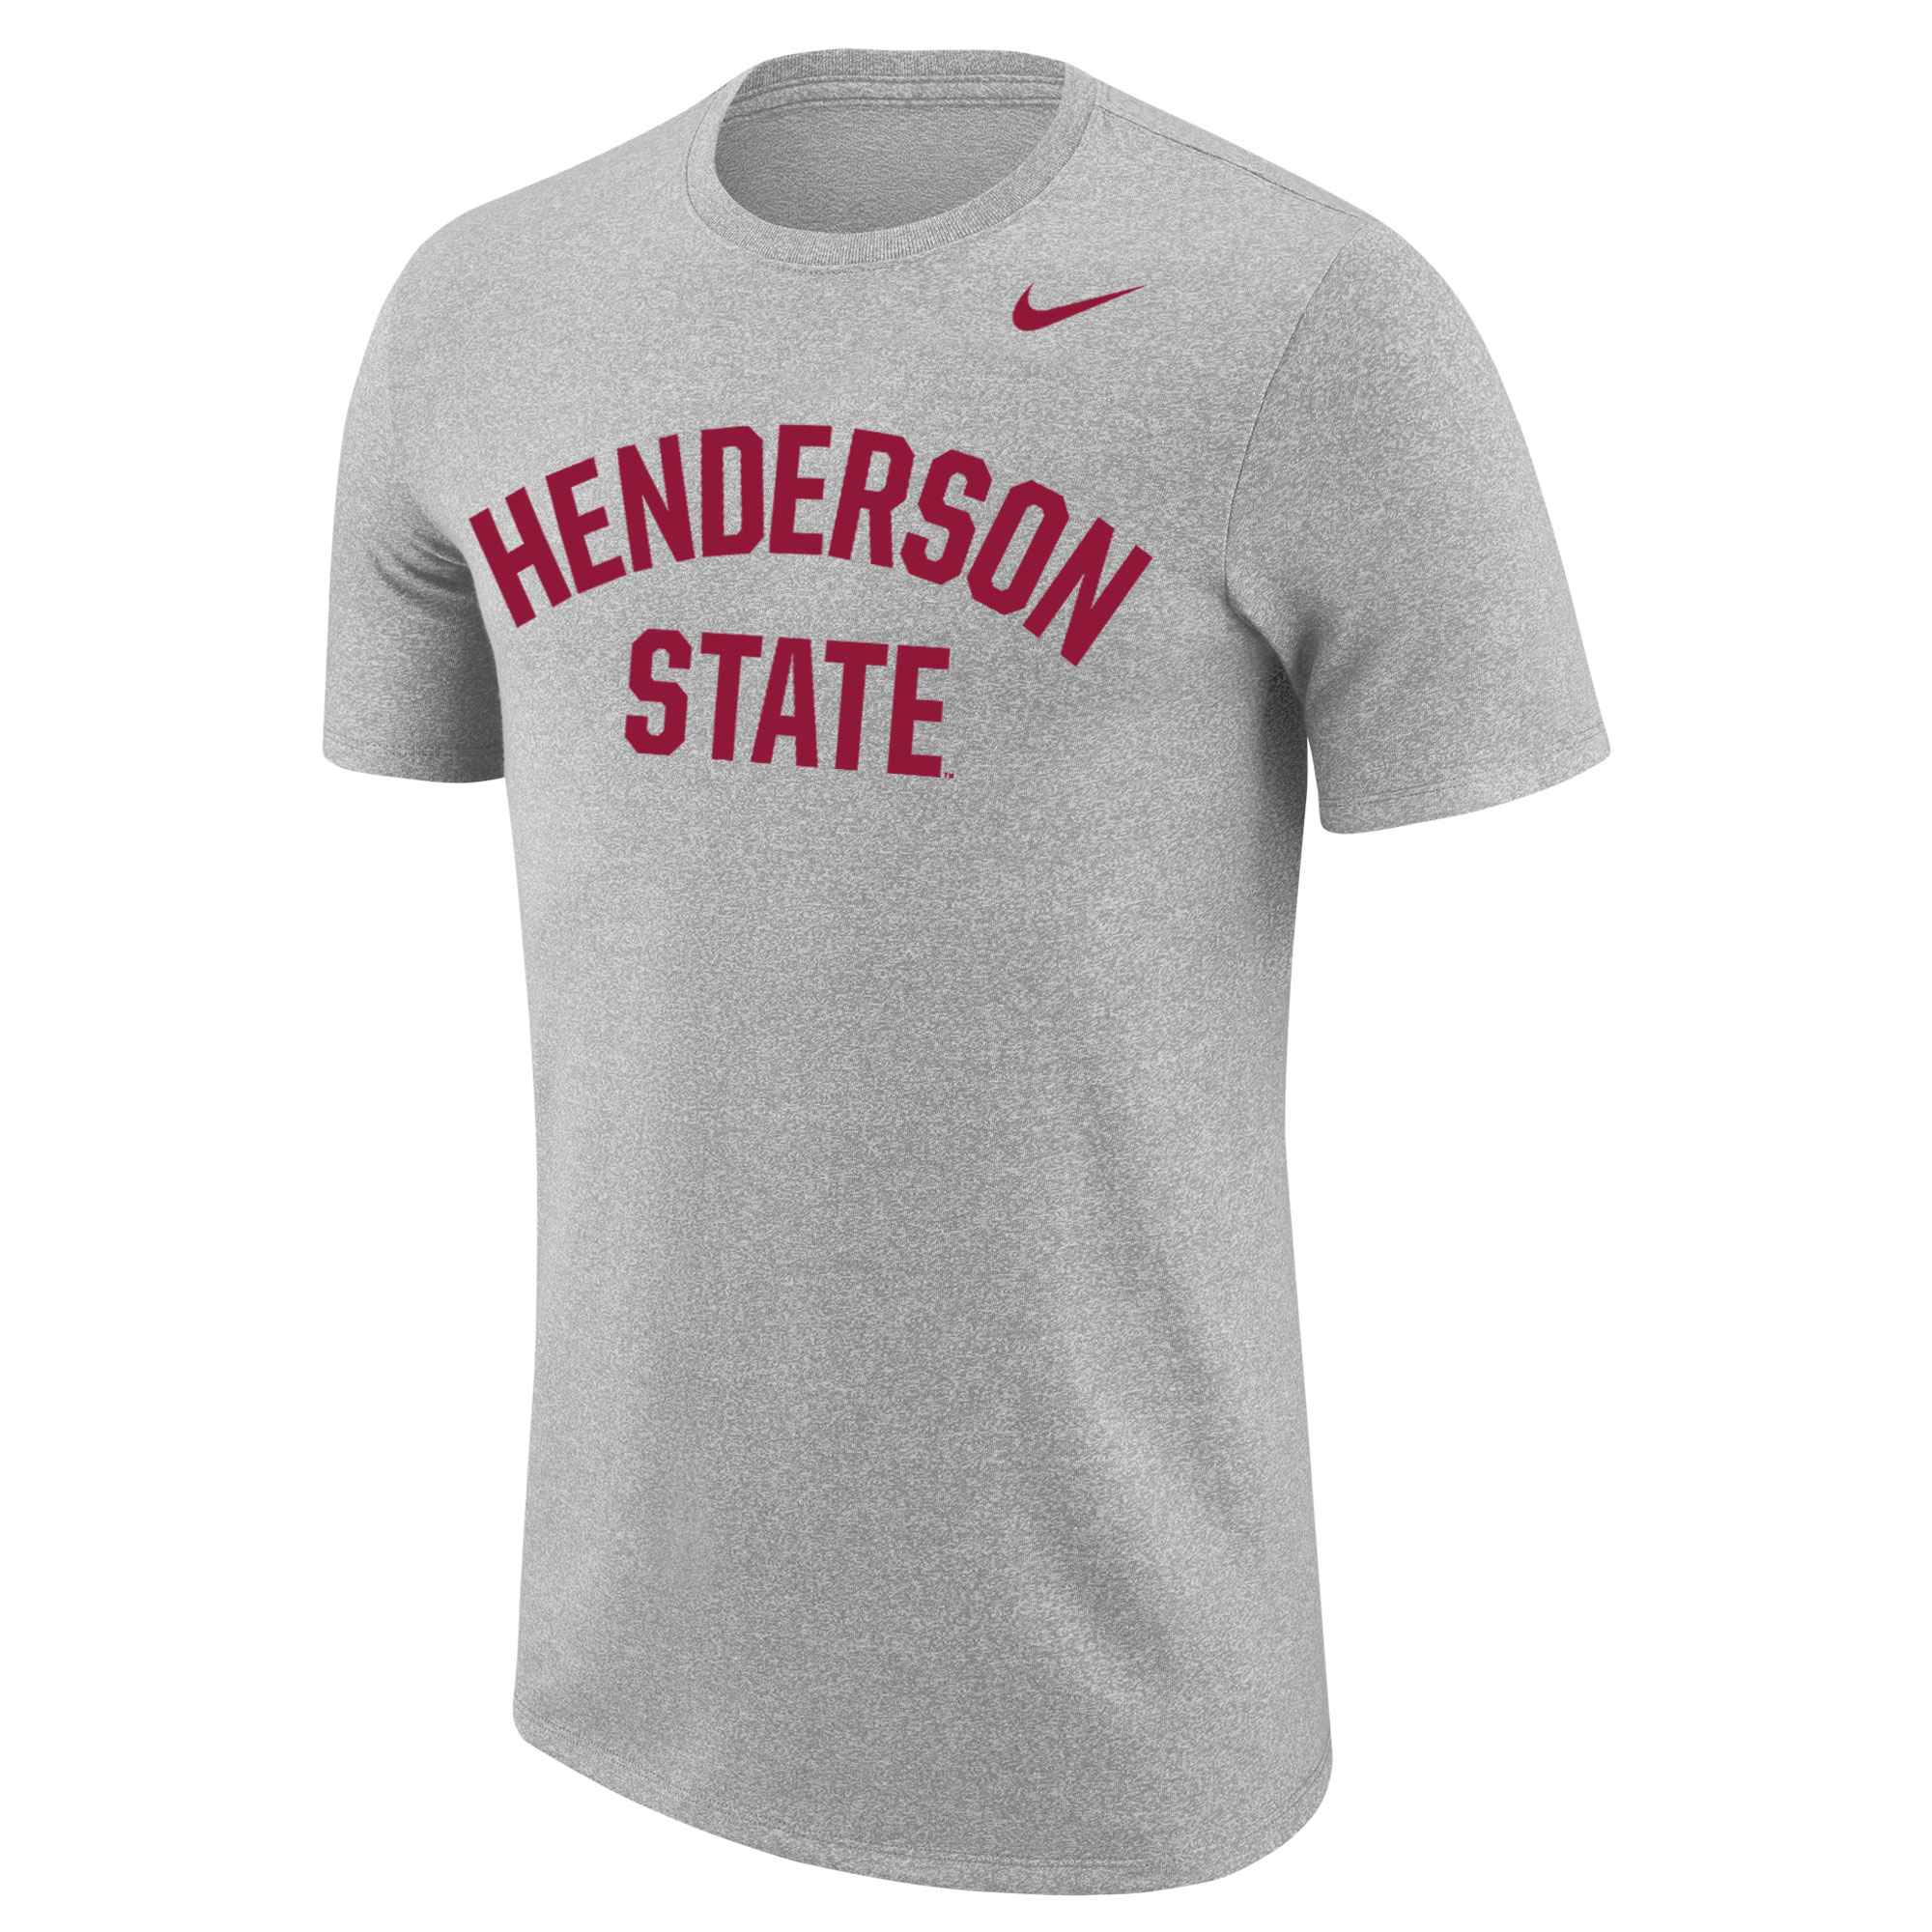 Henderson State Marled SS Tee